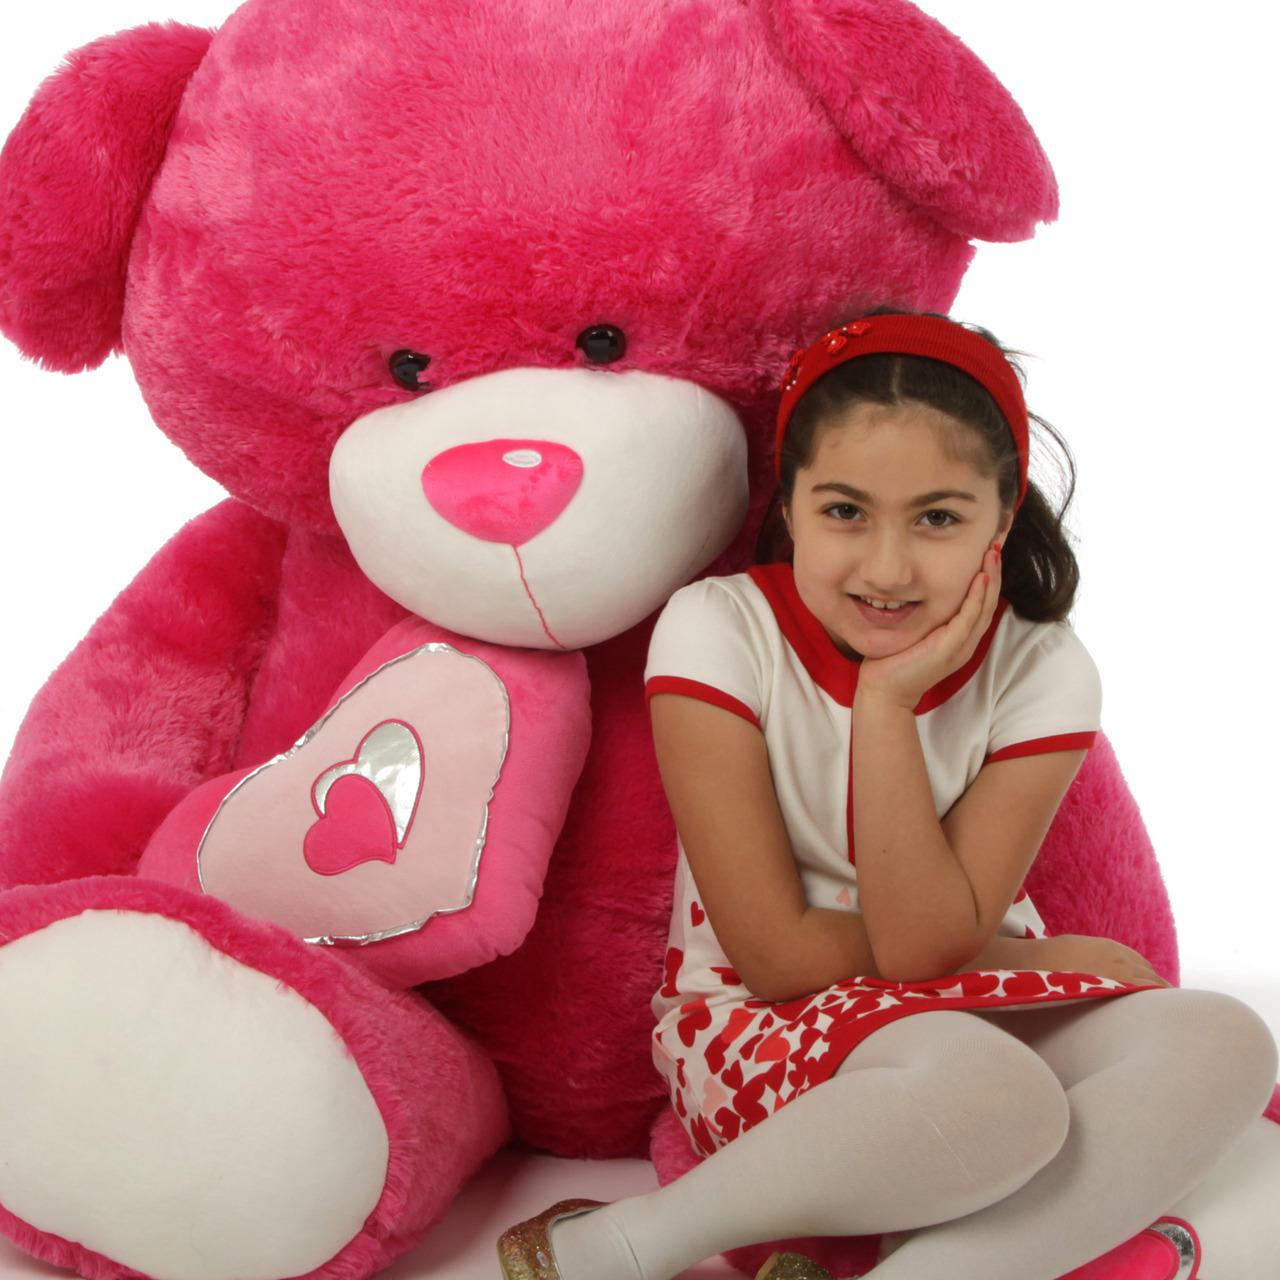 Teddy Day Images For Whatsapp Dp Profile Wallpapers Free Download